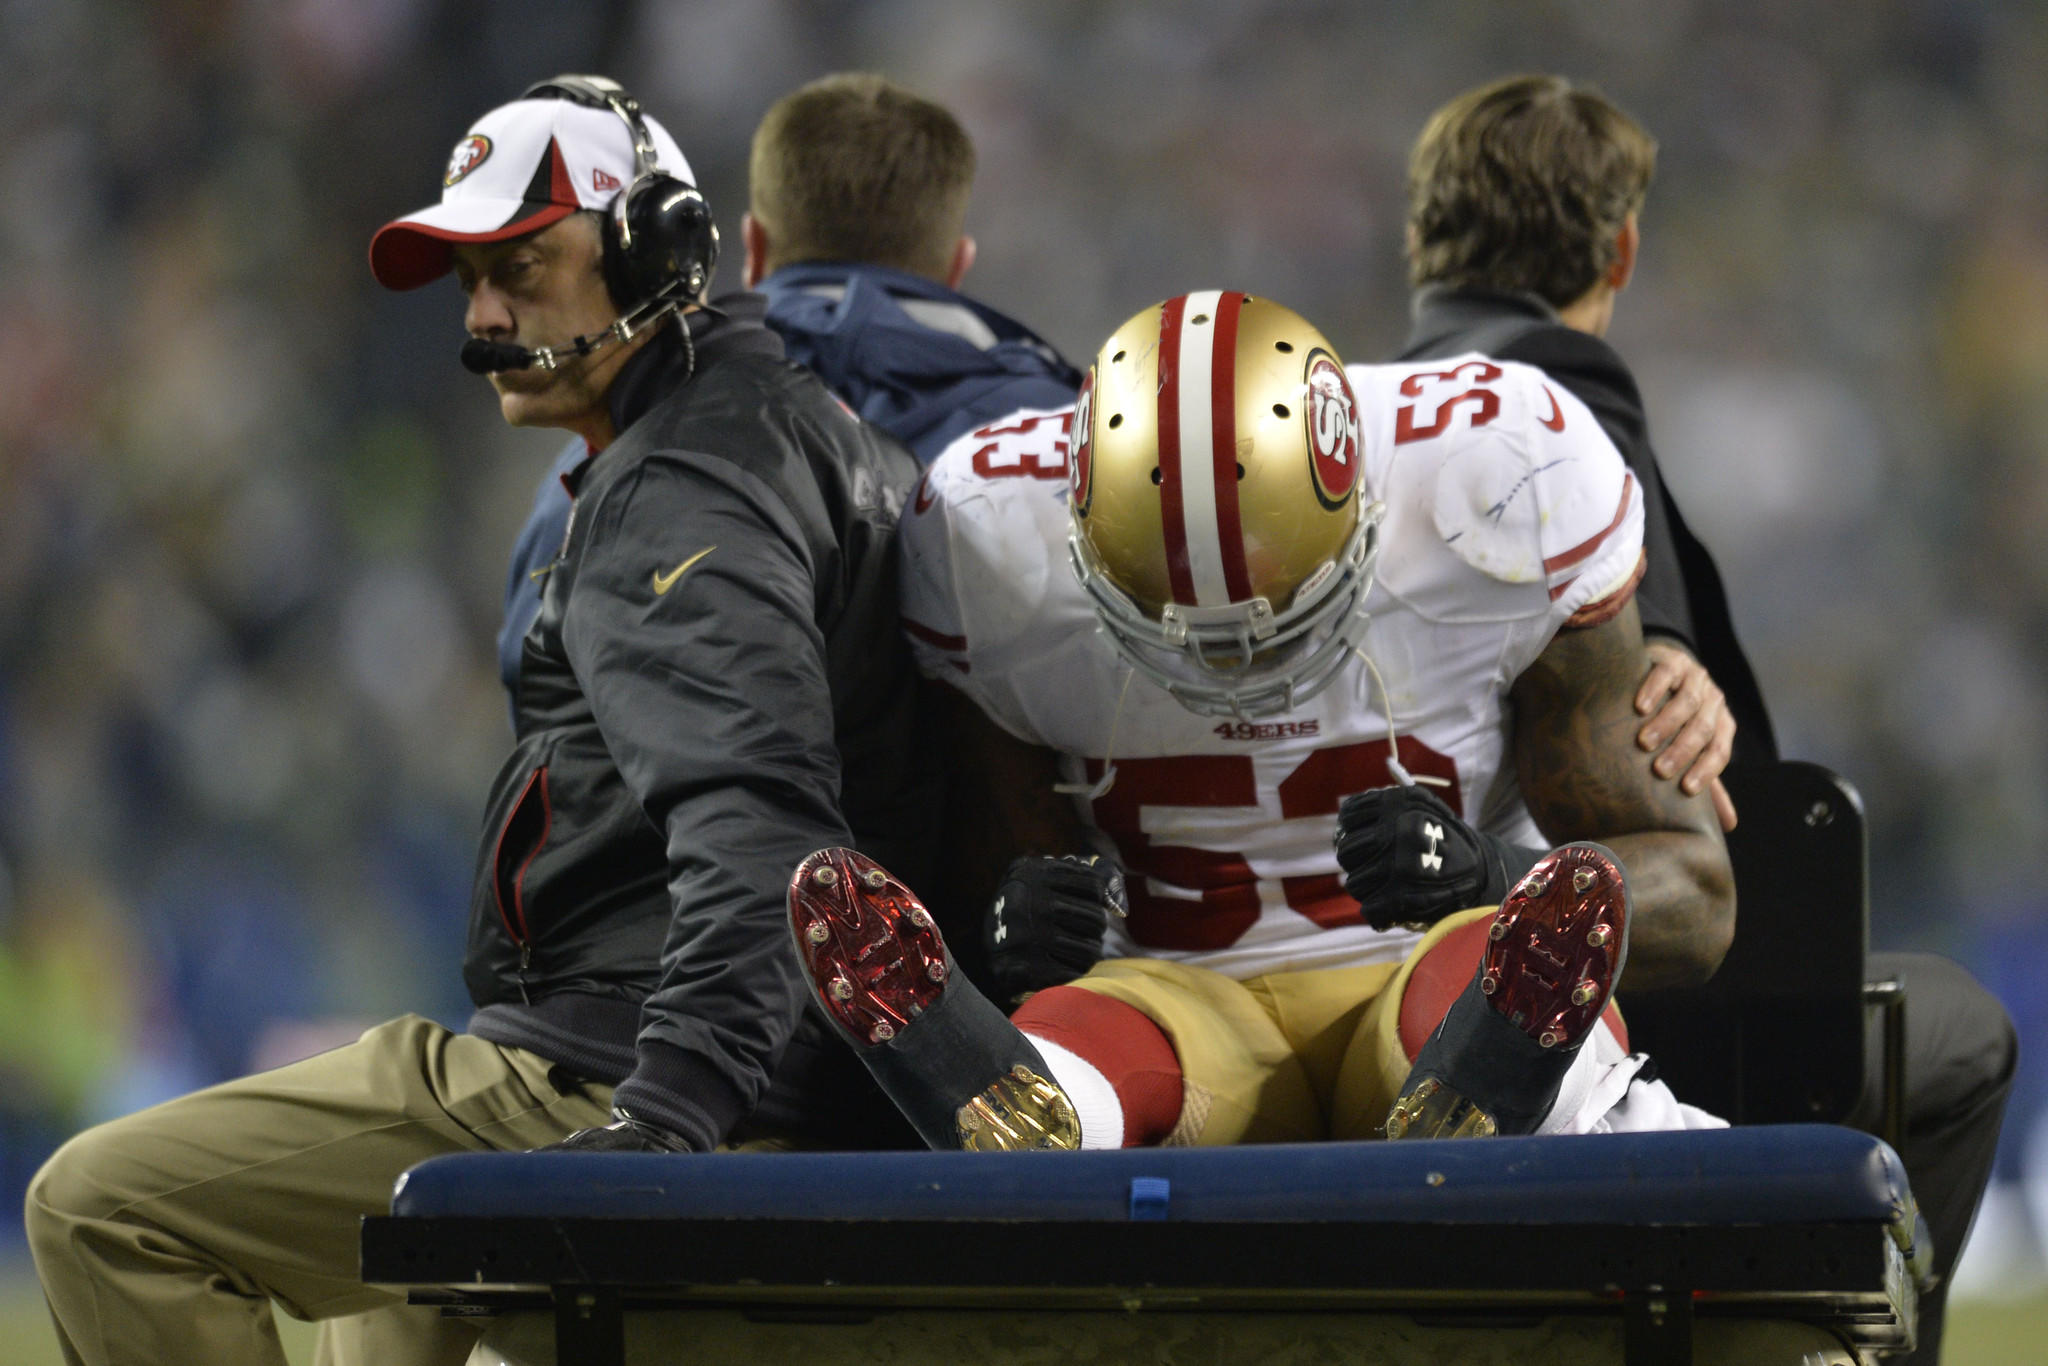 San Francisco 49ers inside linebacker NaVorro Bowman (53) is carted off the field.